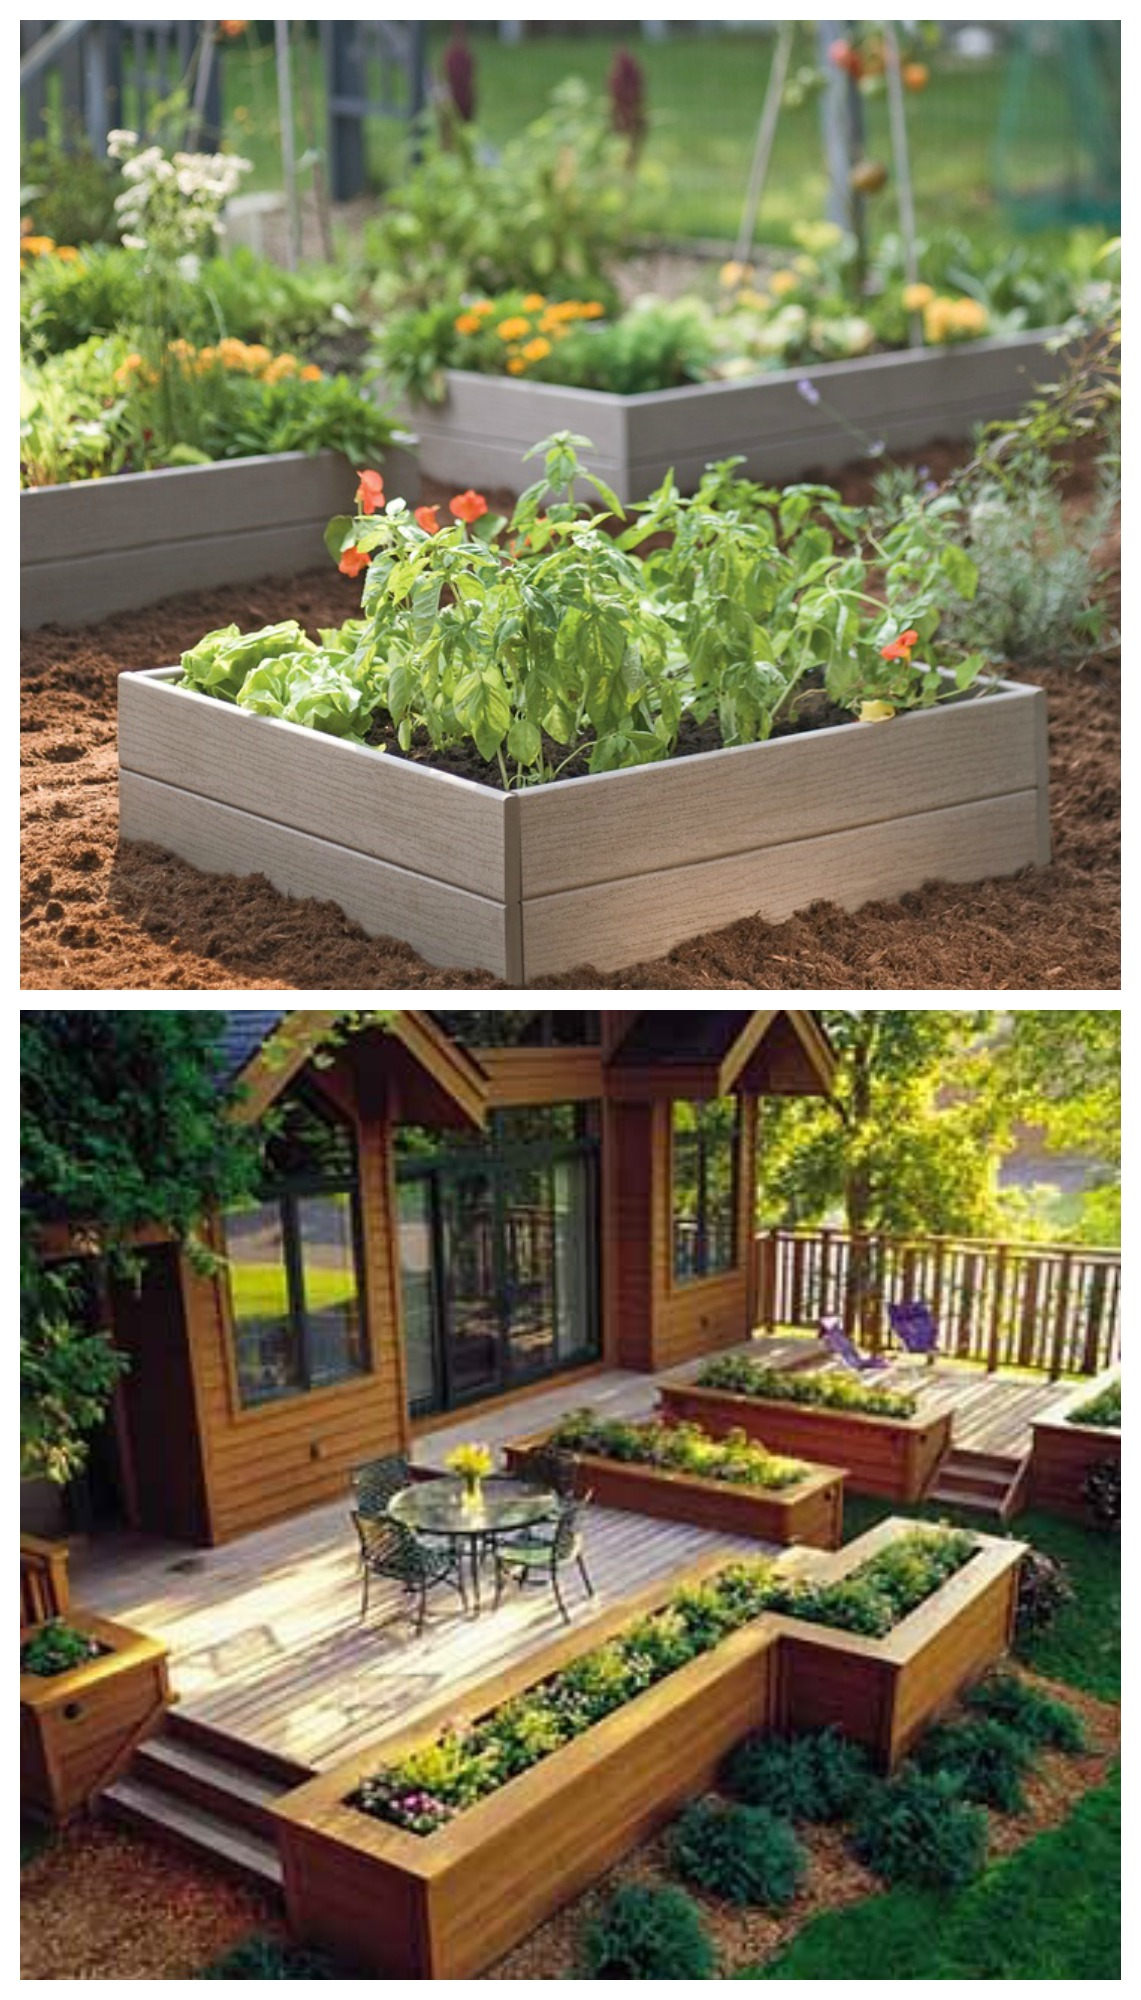 Raised Bed Garden Designs Raised Gardens, Raised Garden